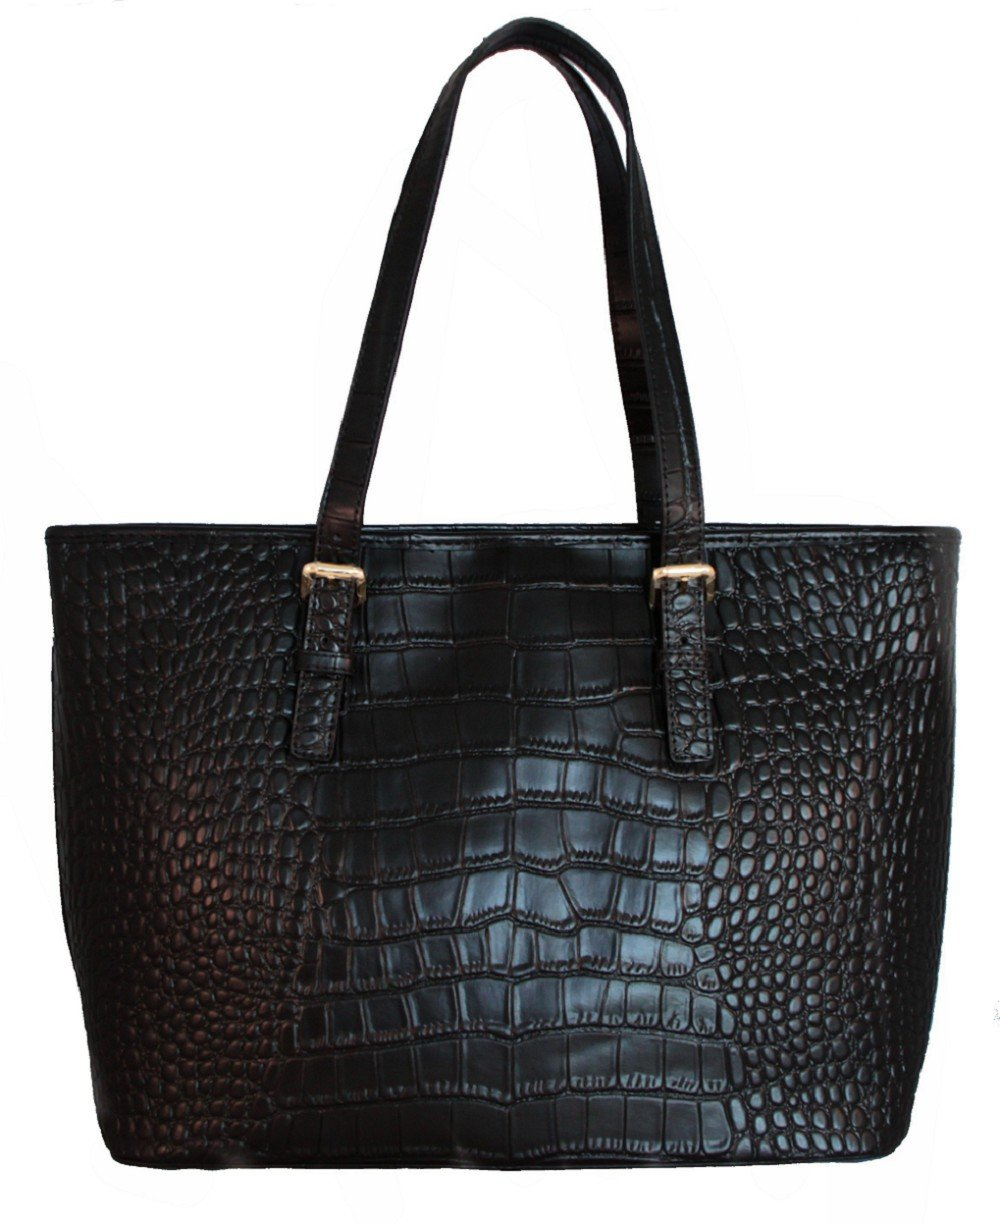 FIORI EE0090 Black Genuine Crocodile Pattern Cow Leather BABY BAG.